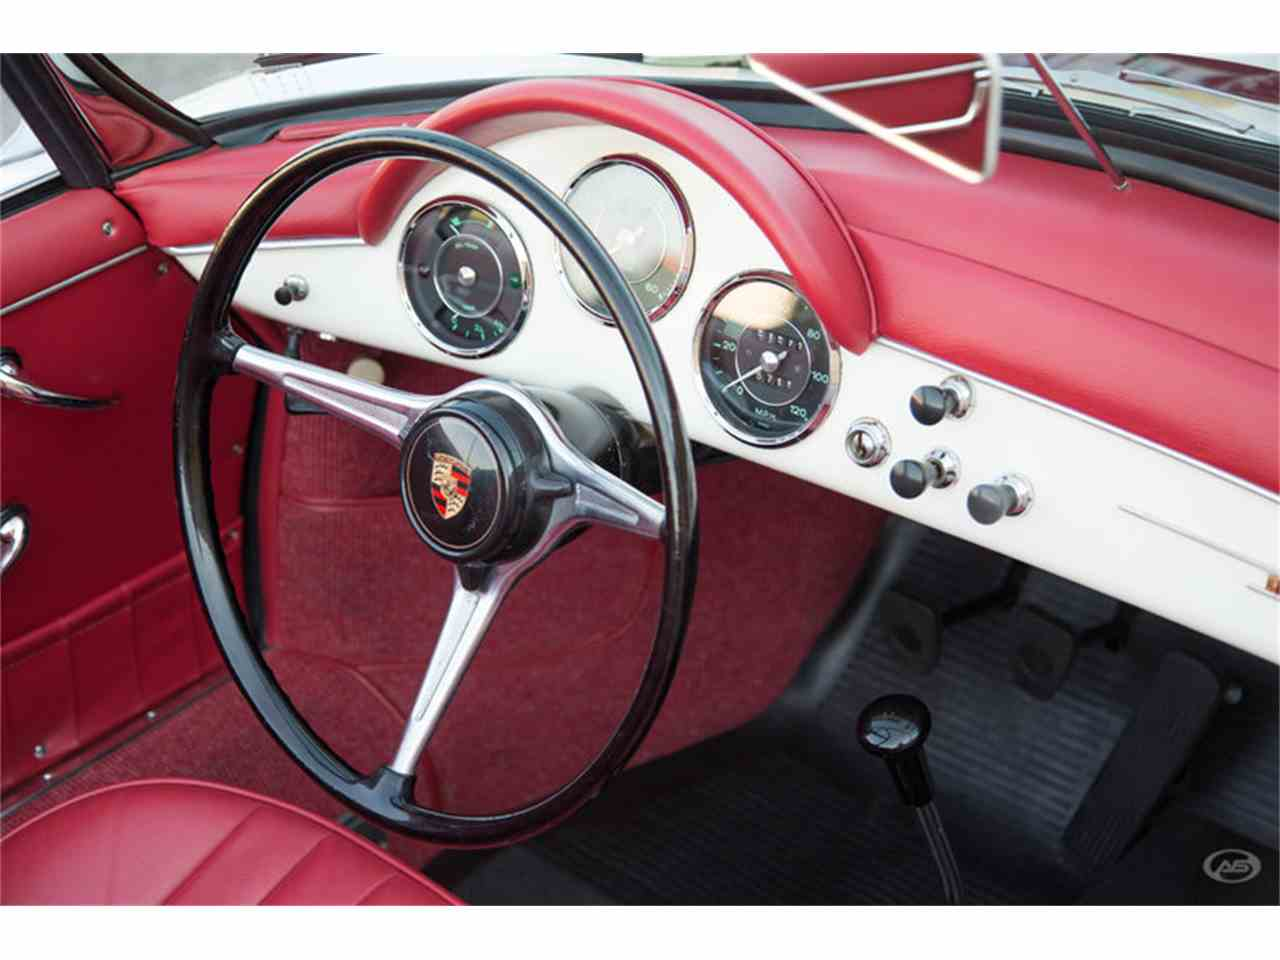 Large Picture of 1961 Porsche 356B located in Tennessee - $179,900.00 - LHC5